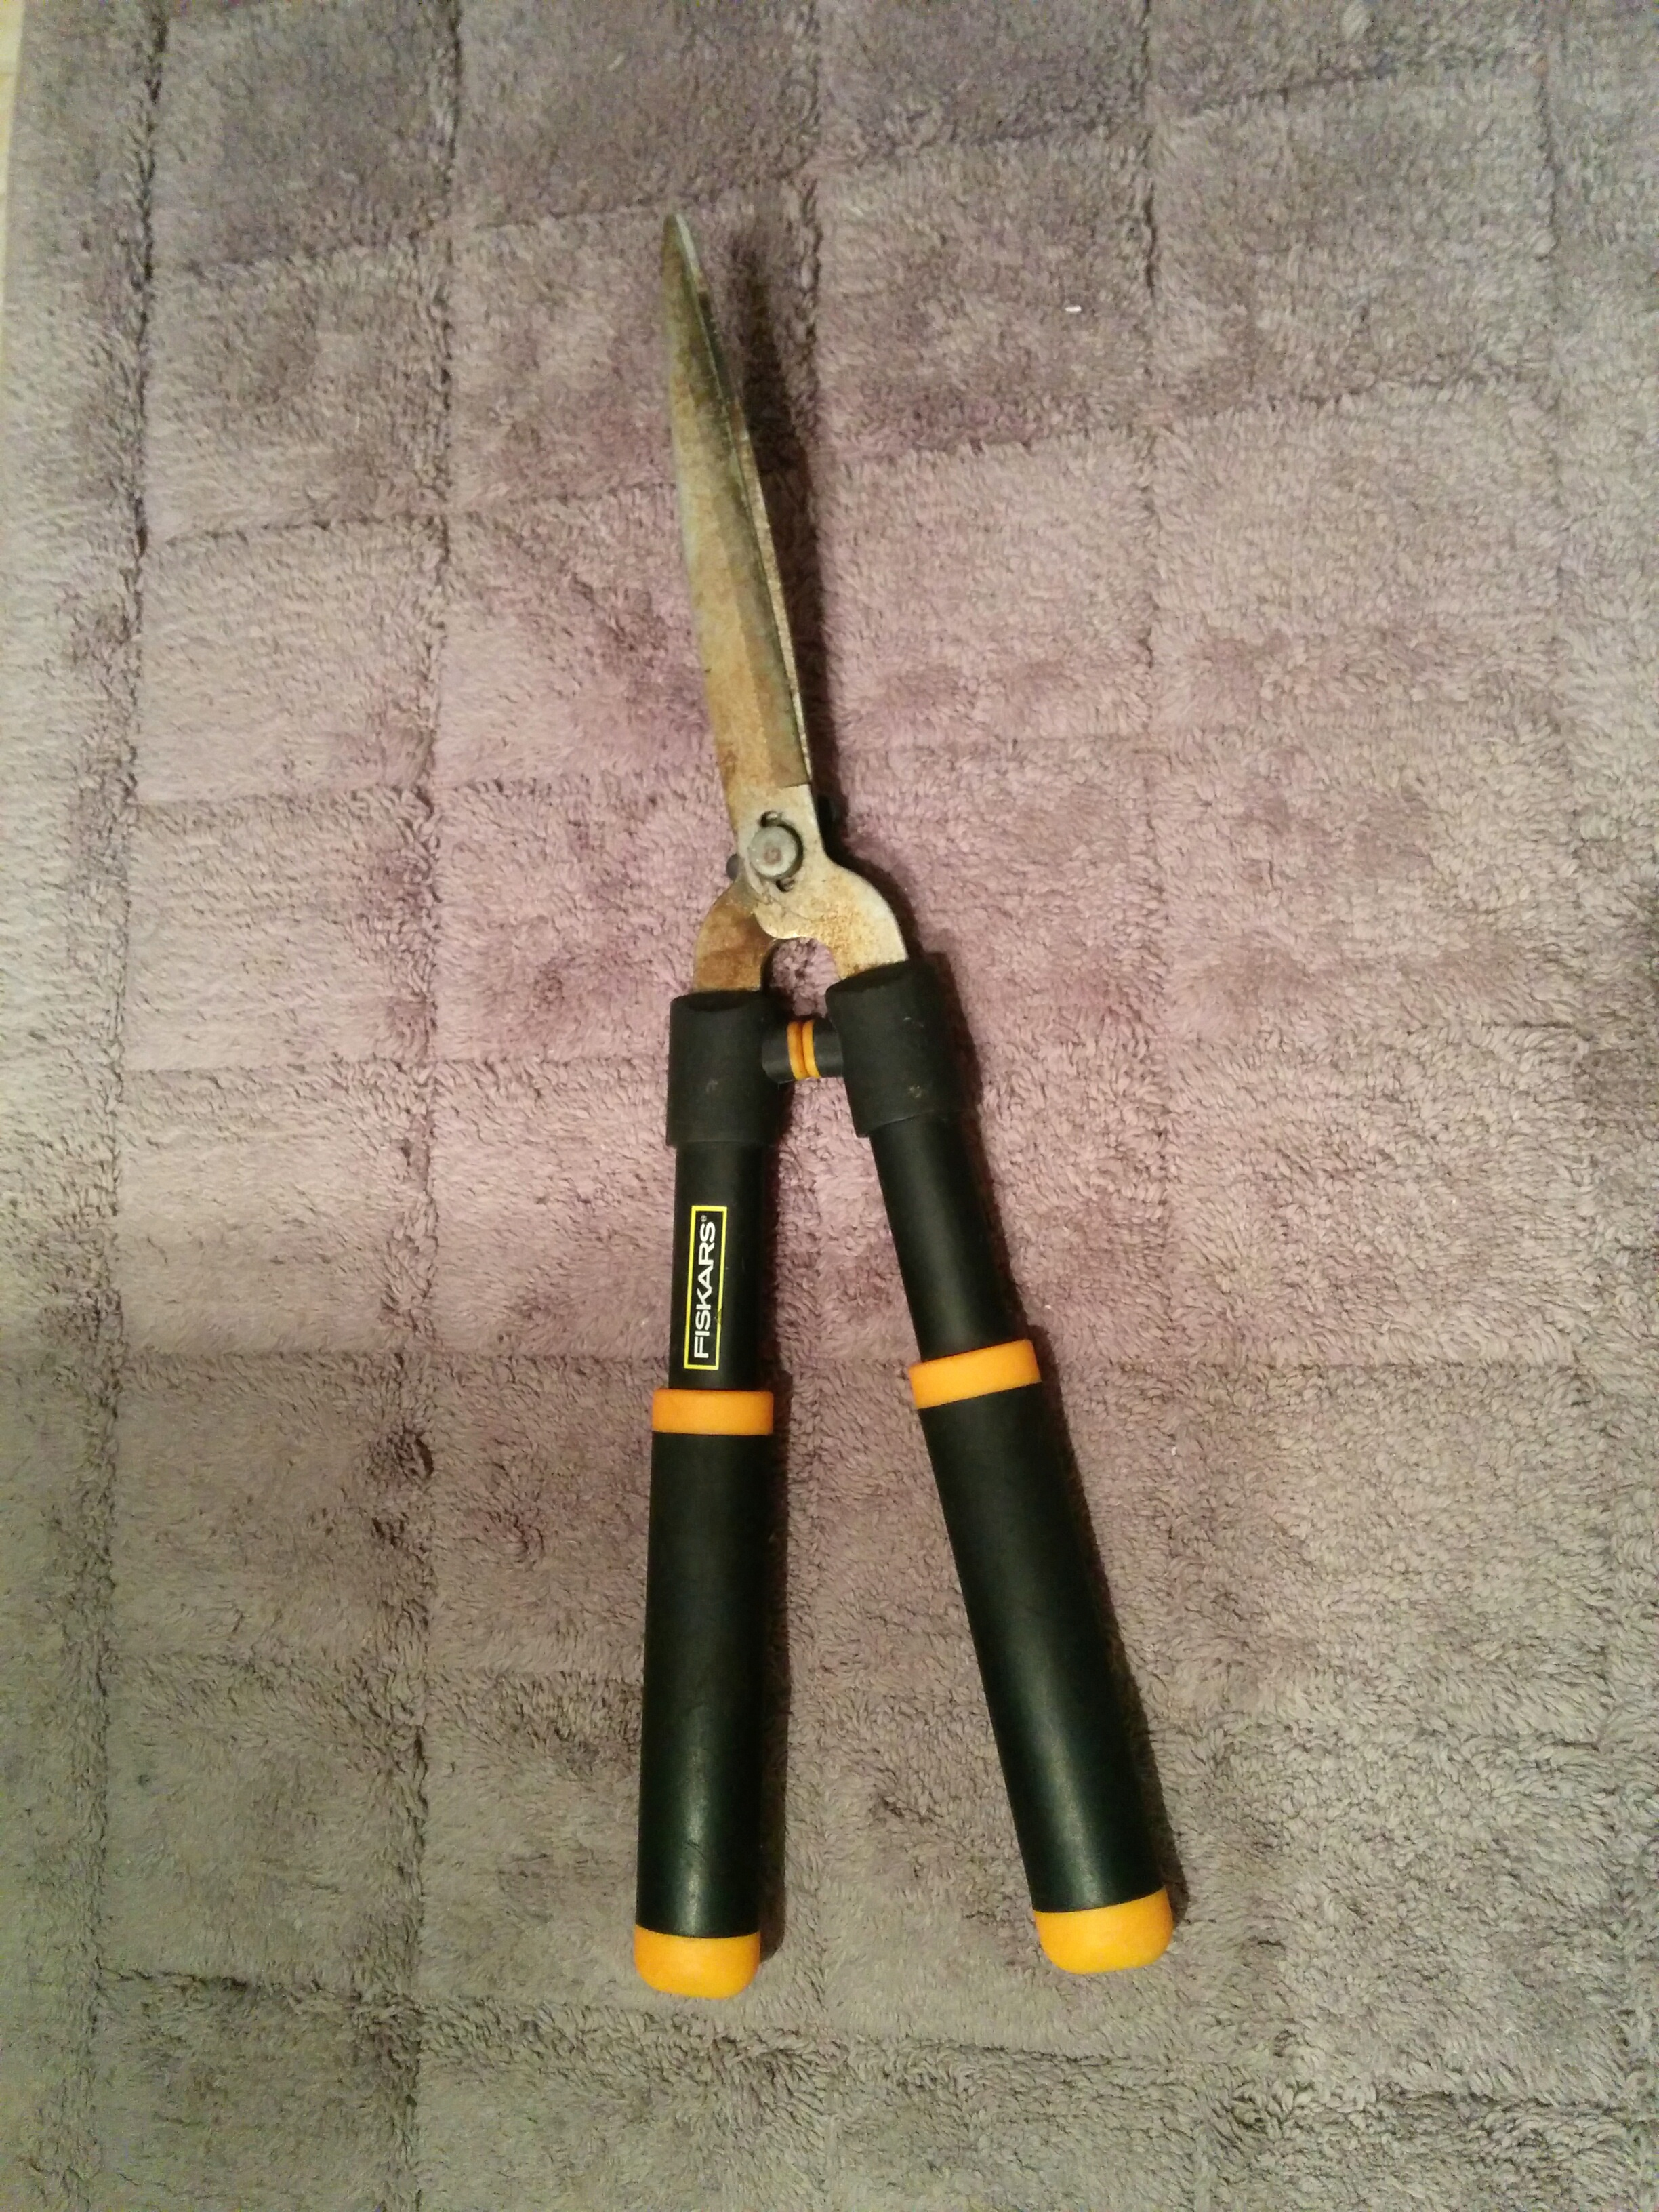 Easy restore and cleaning steel with magic fiber stick